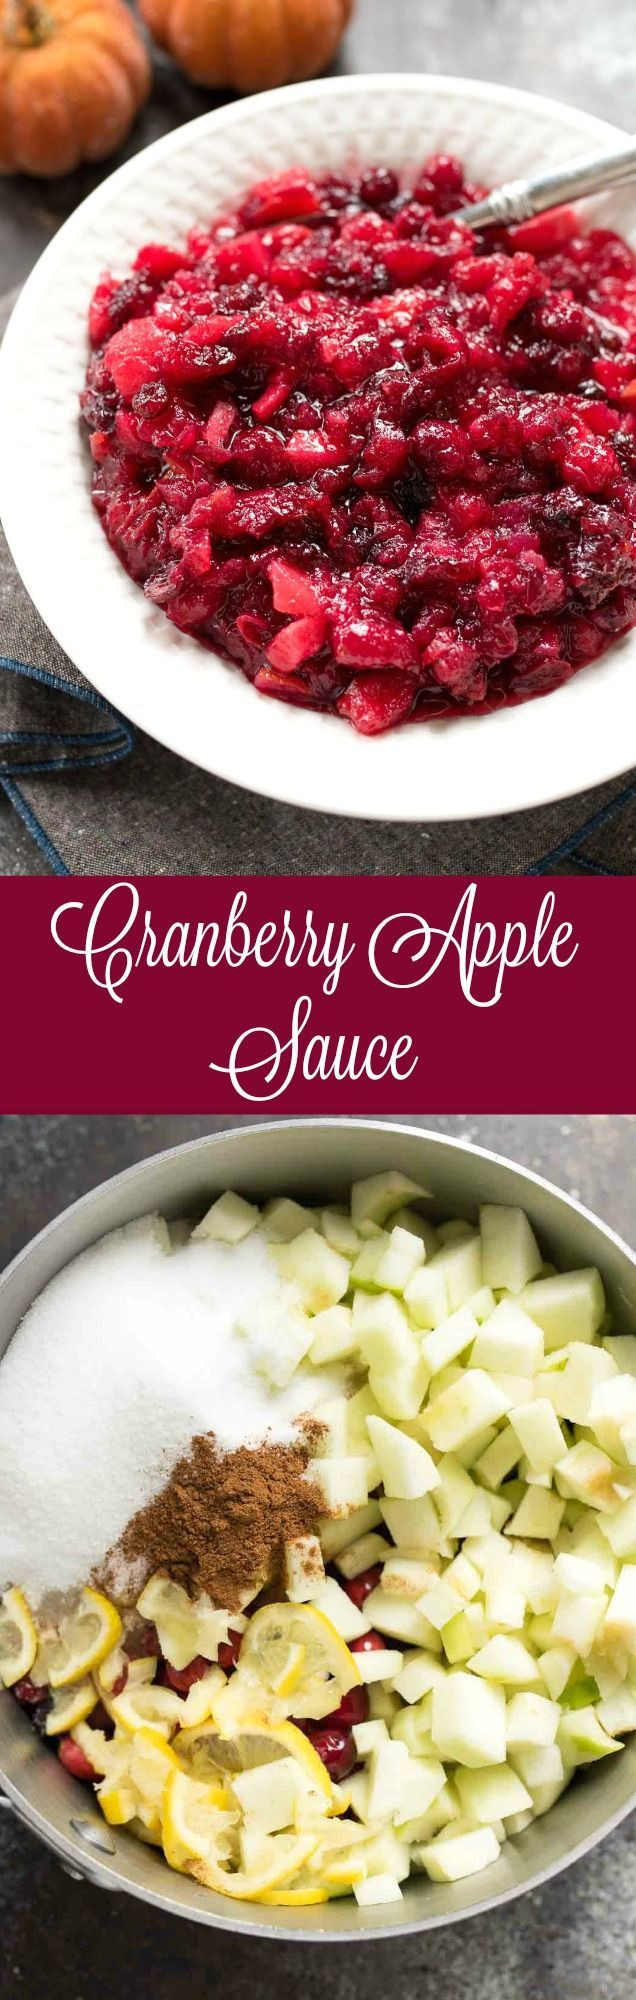 Cranberry Apple Sauce | green apples + lemon and cinnamon make this the perfect cranberry sauce for your Holiday spread. Naturally gluten free!